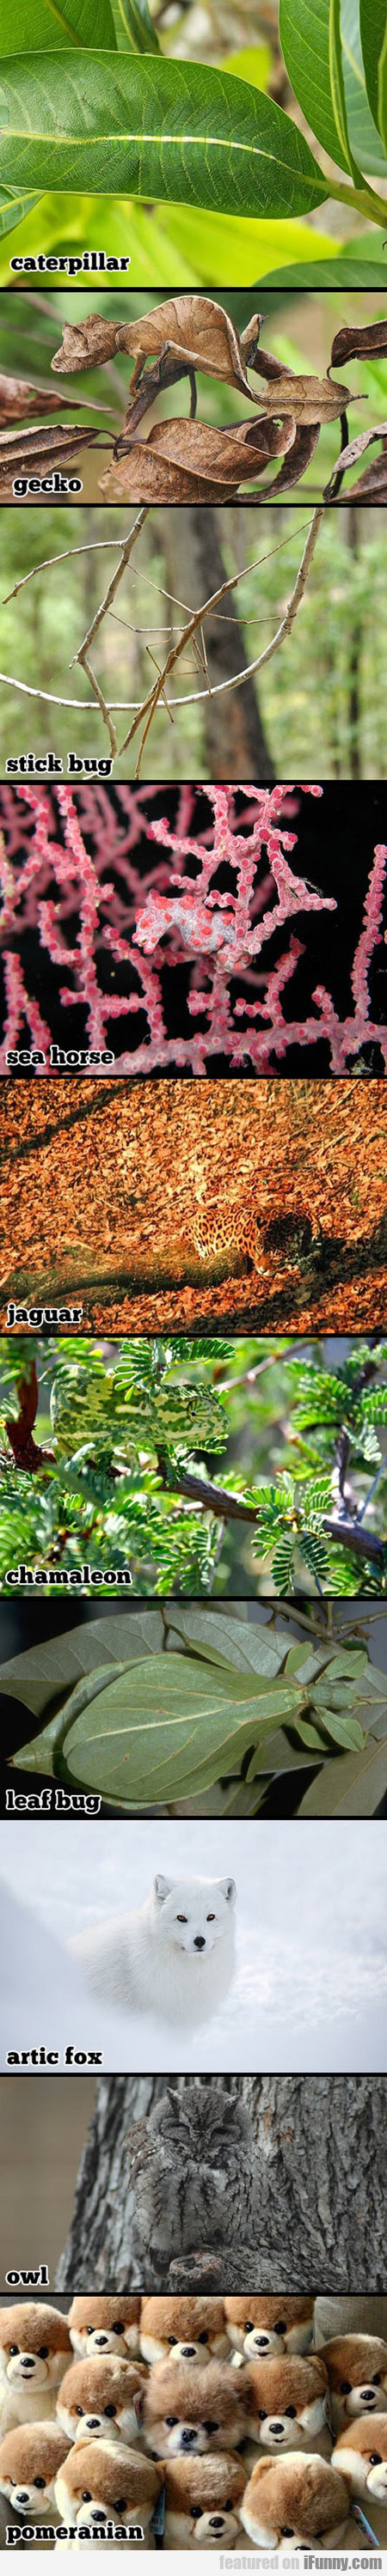 Camouflaged Animals, Can You See Them?